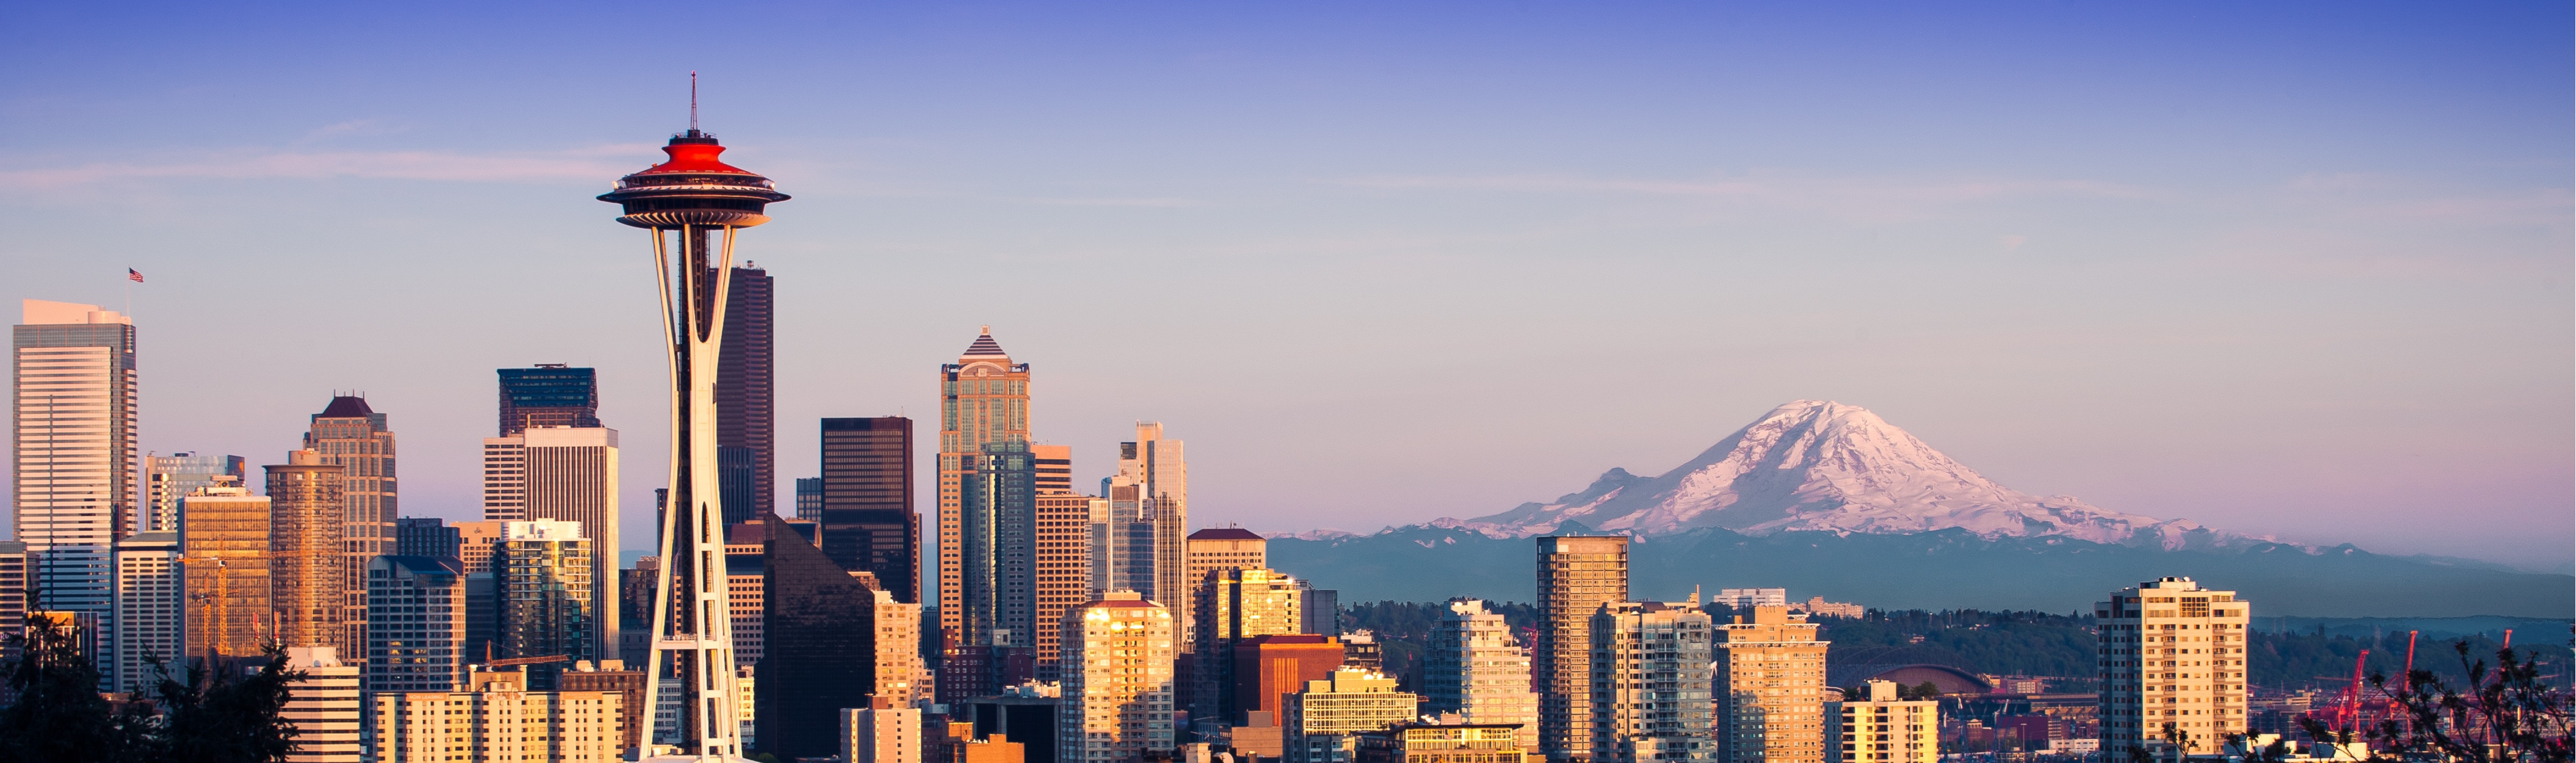 Seattle-skyline-kerry-park-4219x1250.png